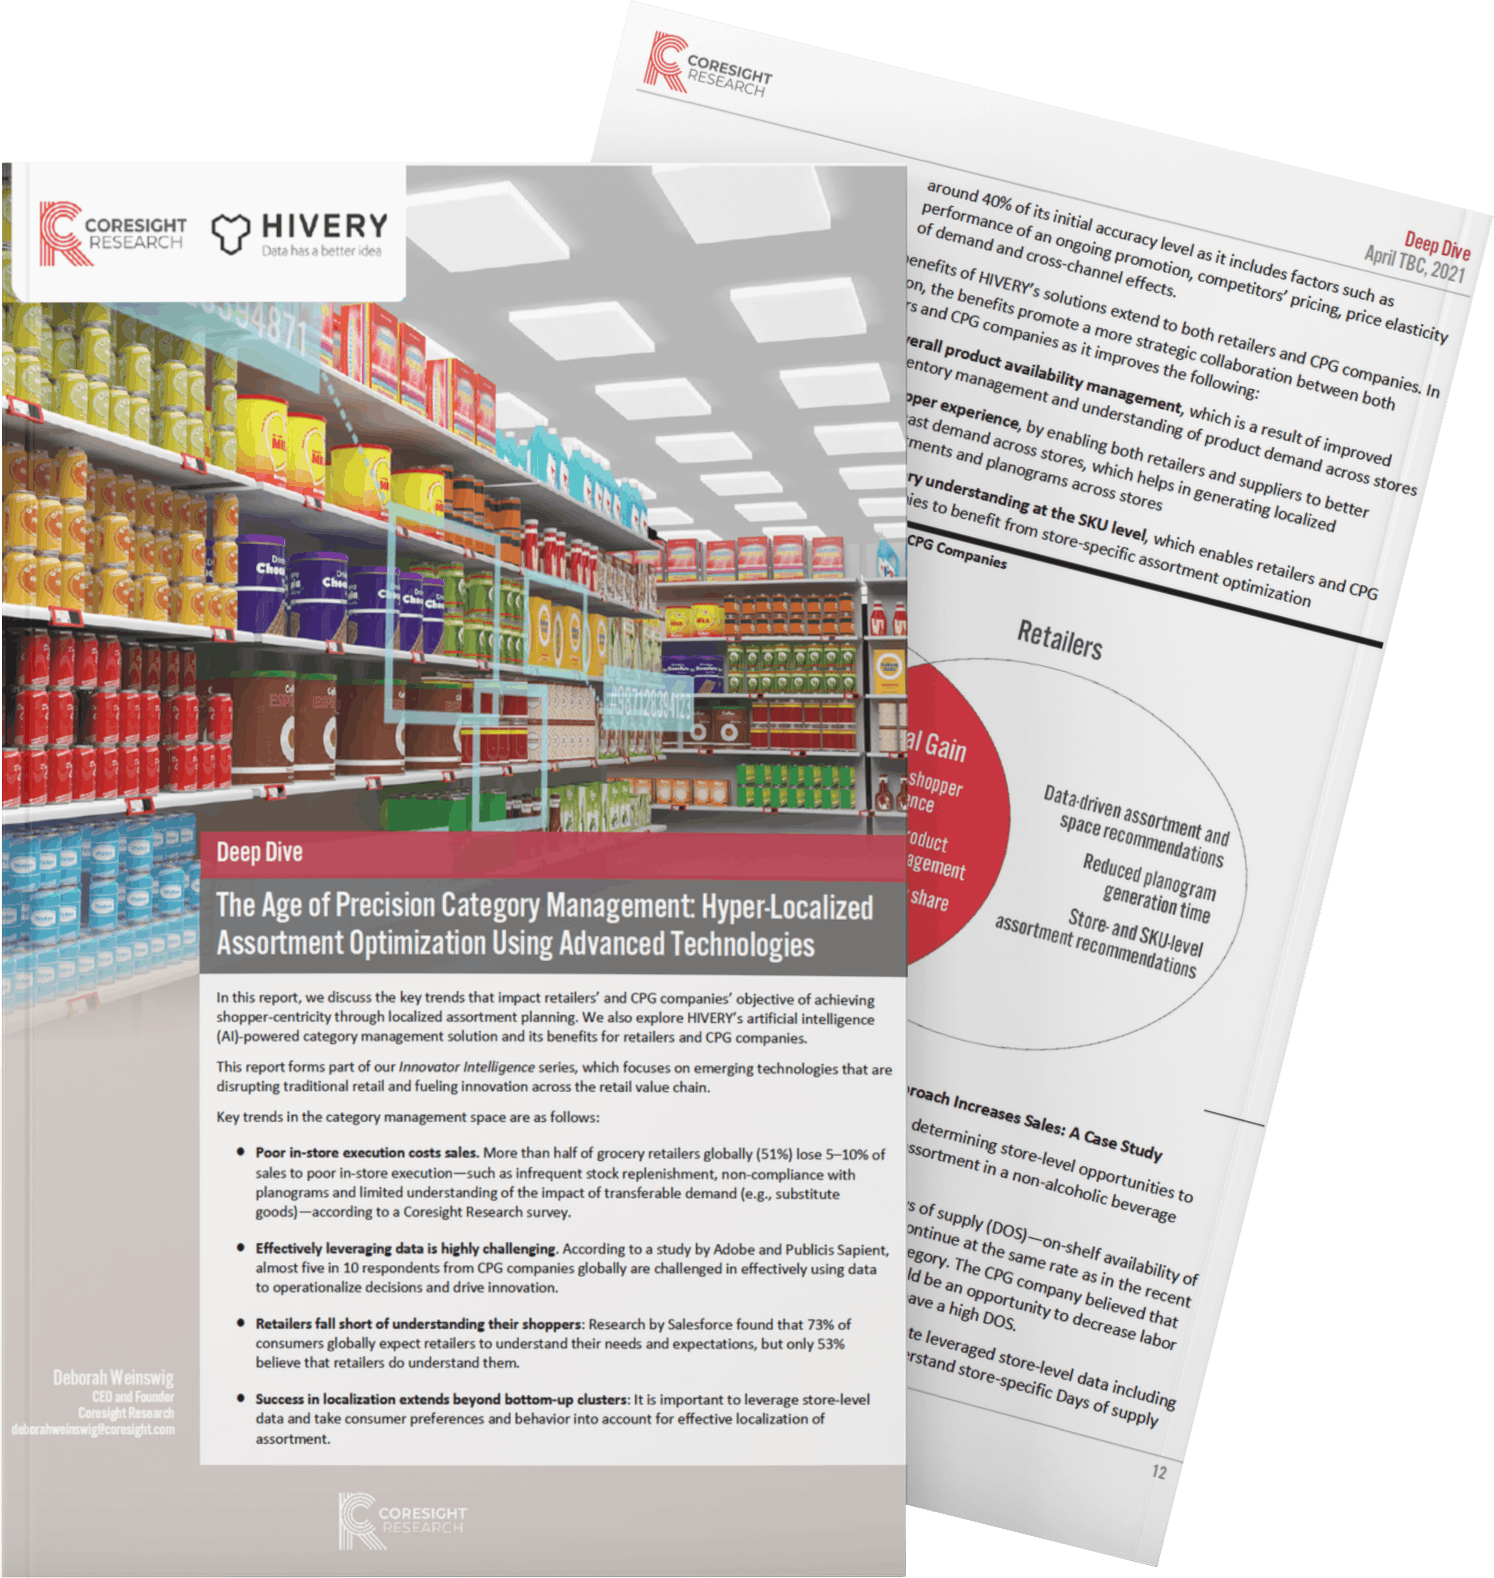 The Age of Precision Category Management